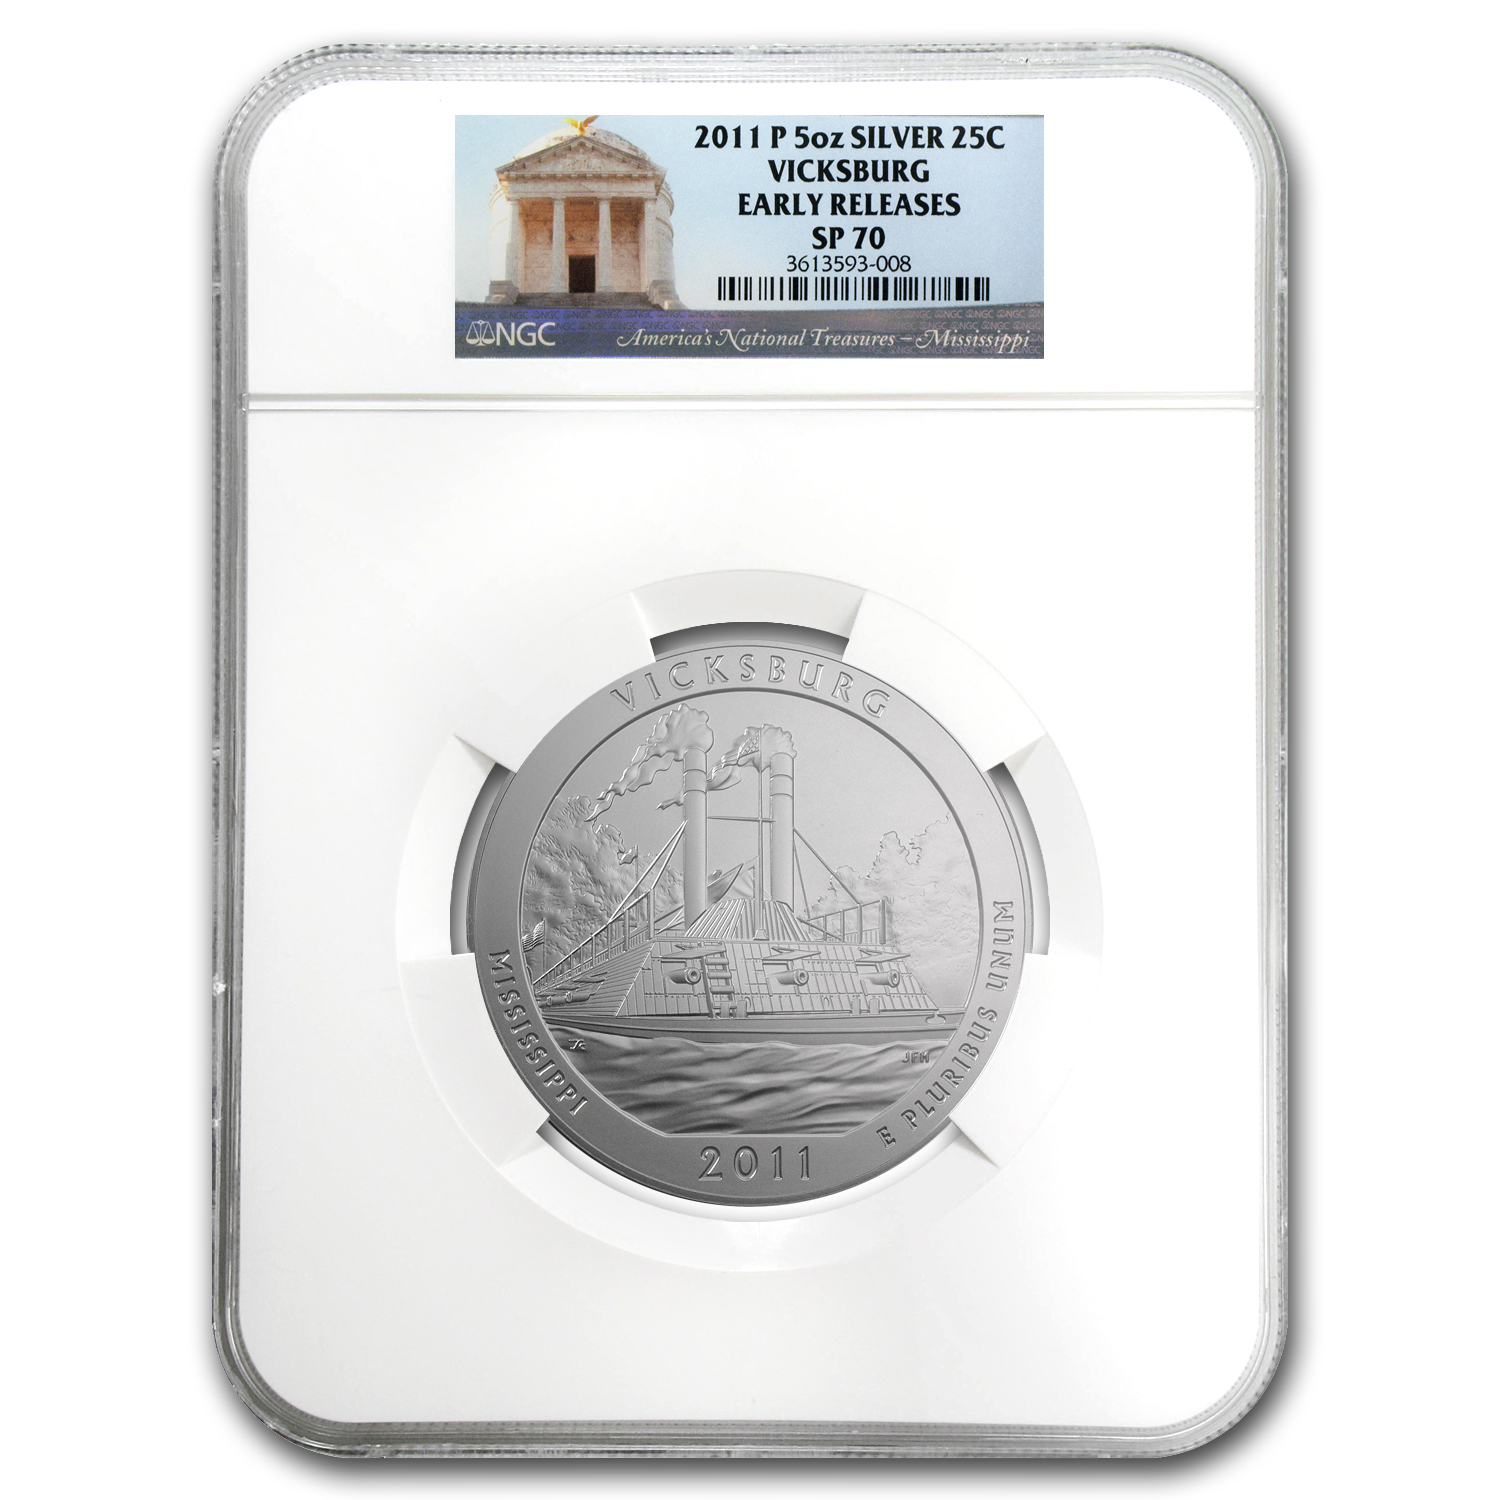 2011-P 5 oz Silver ATB Vicksburg SP-70 NGC (Early Release)